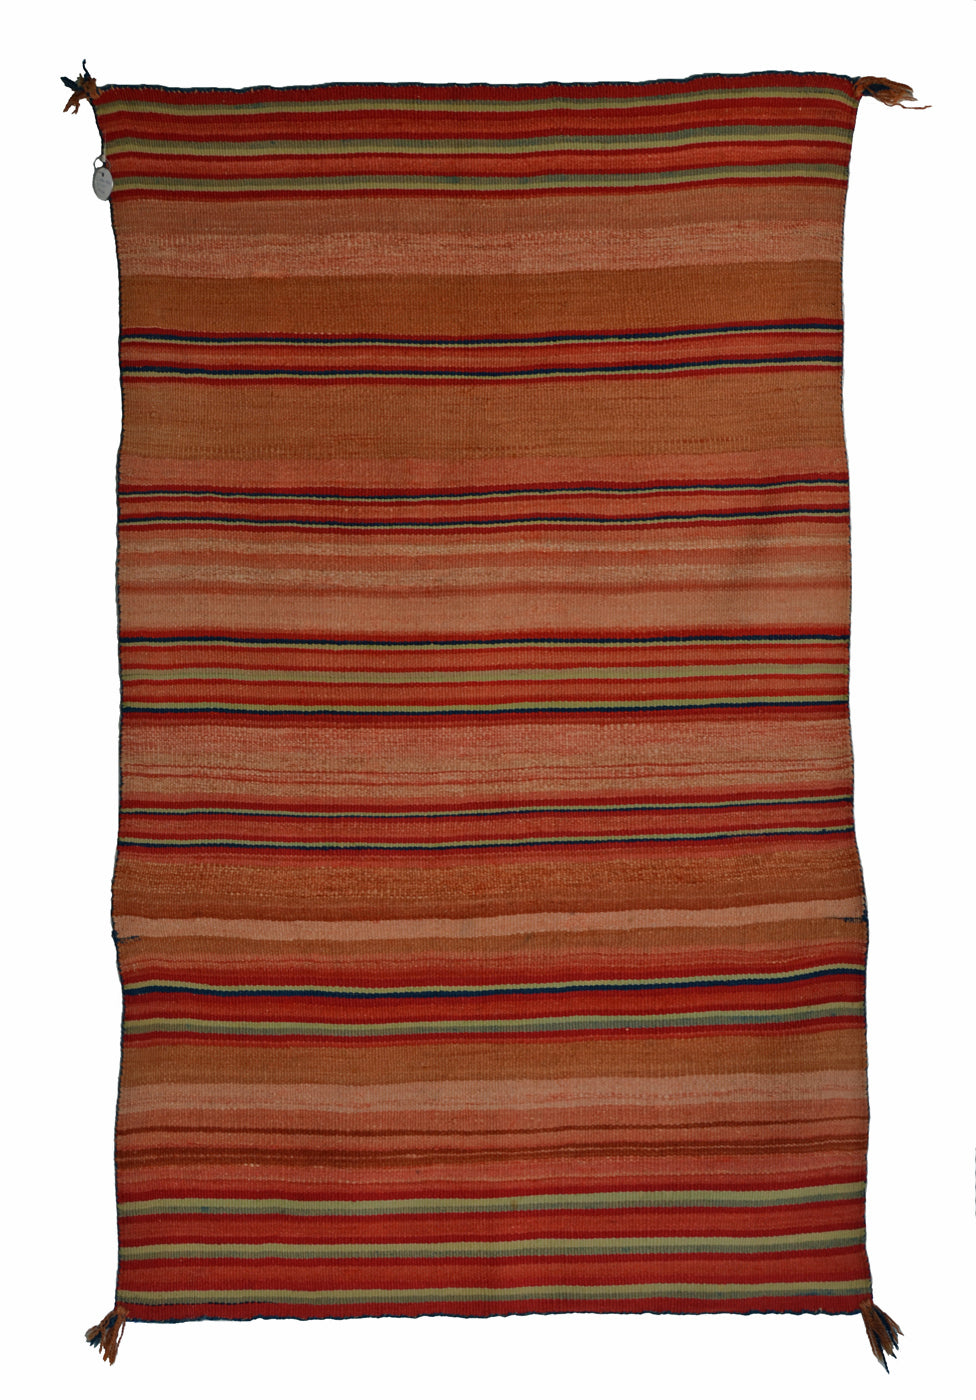 Late Classic Navajo Blanket child's proportions